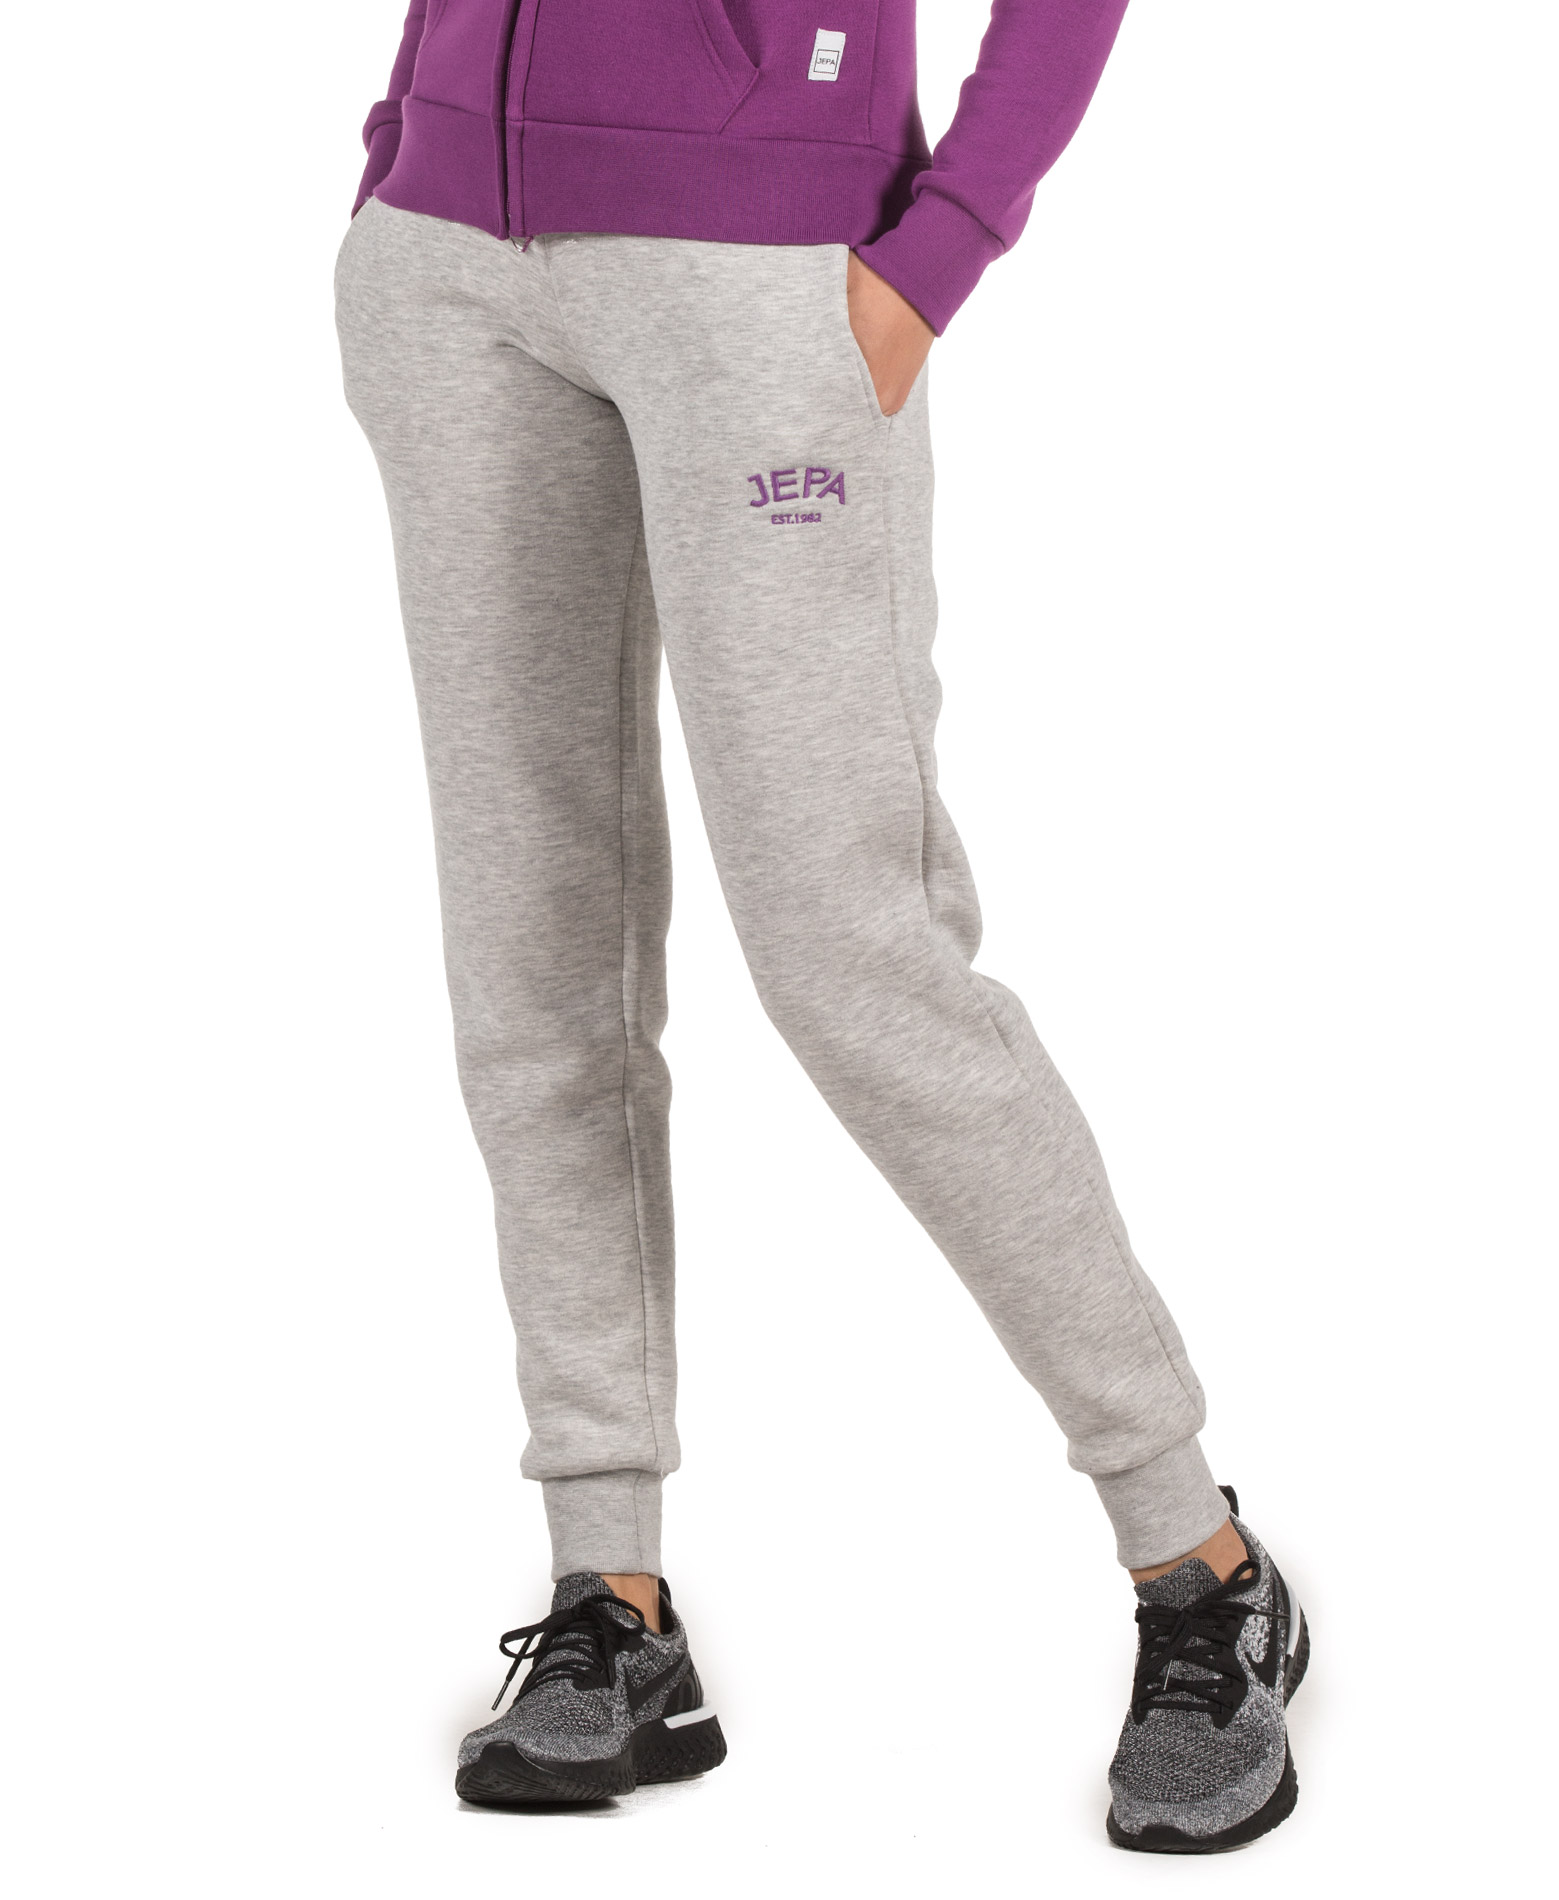 JEPA WMN JOGGING PANTS WITH EMBROIDERY 27-28022-GREY MELANGE Γκρί